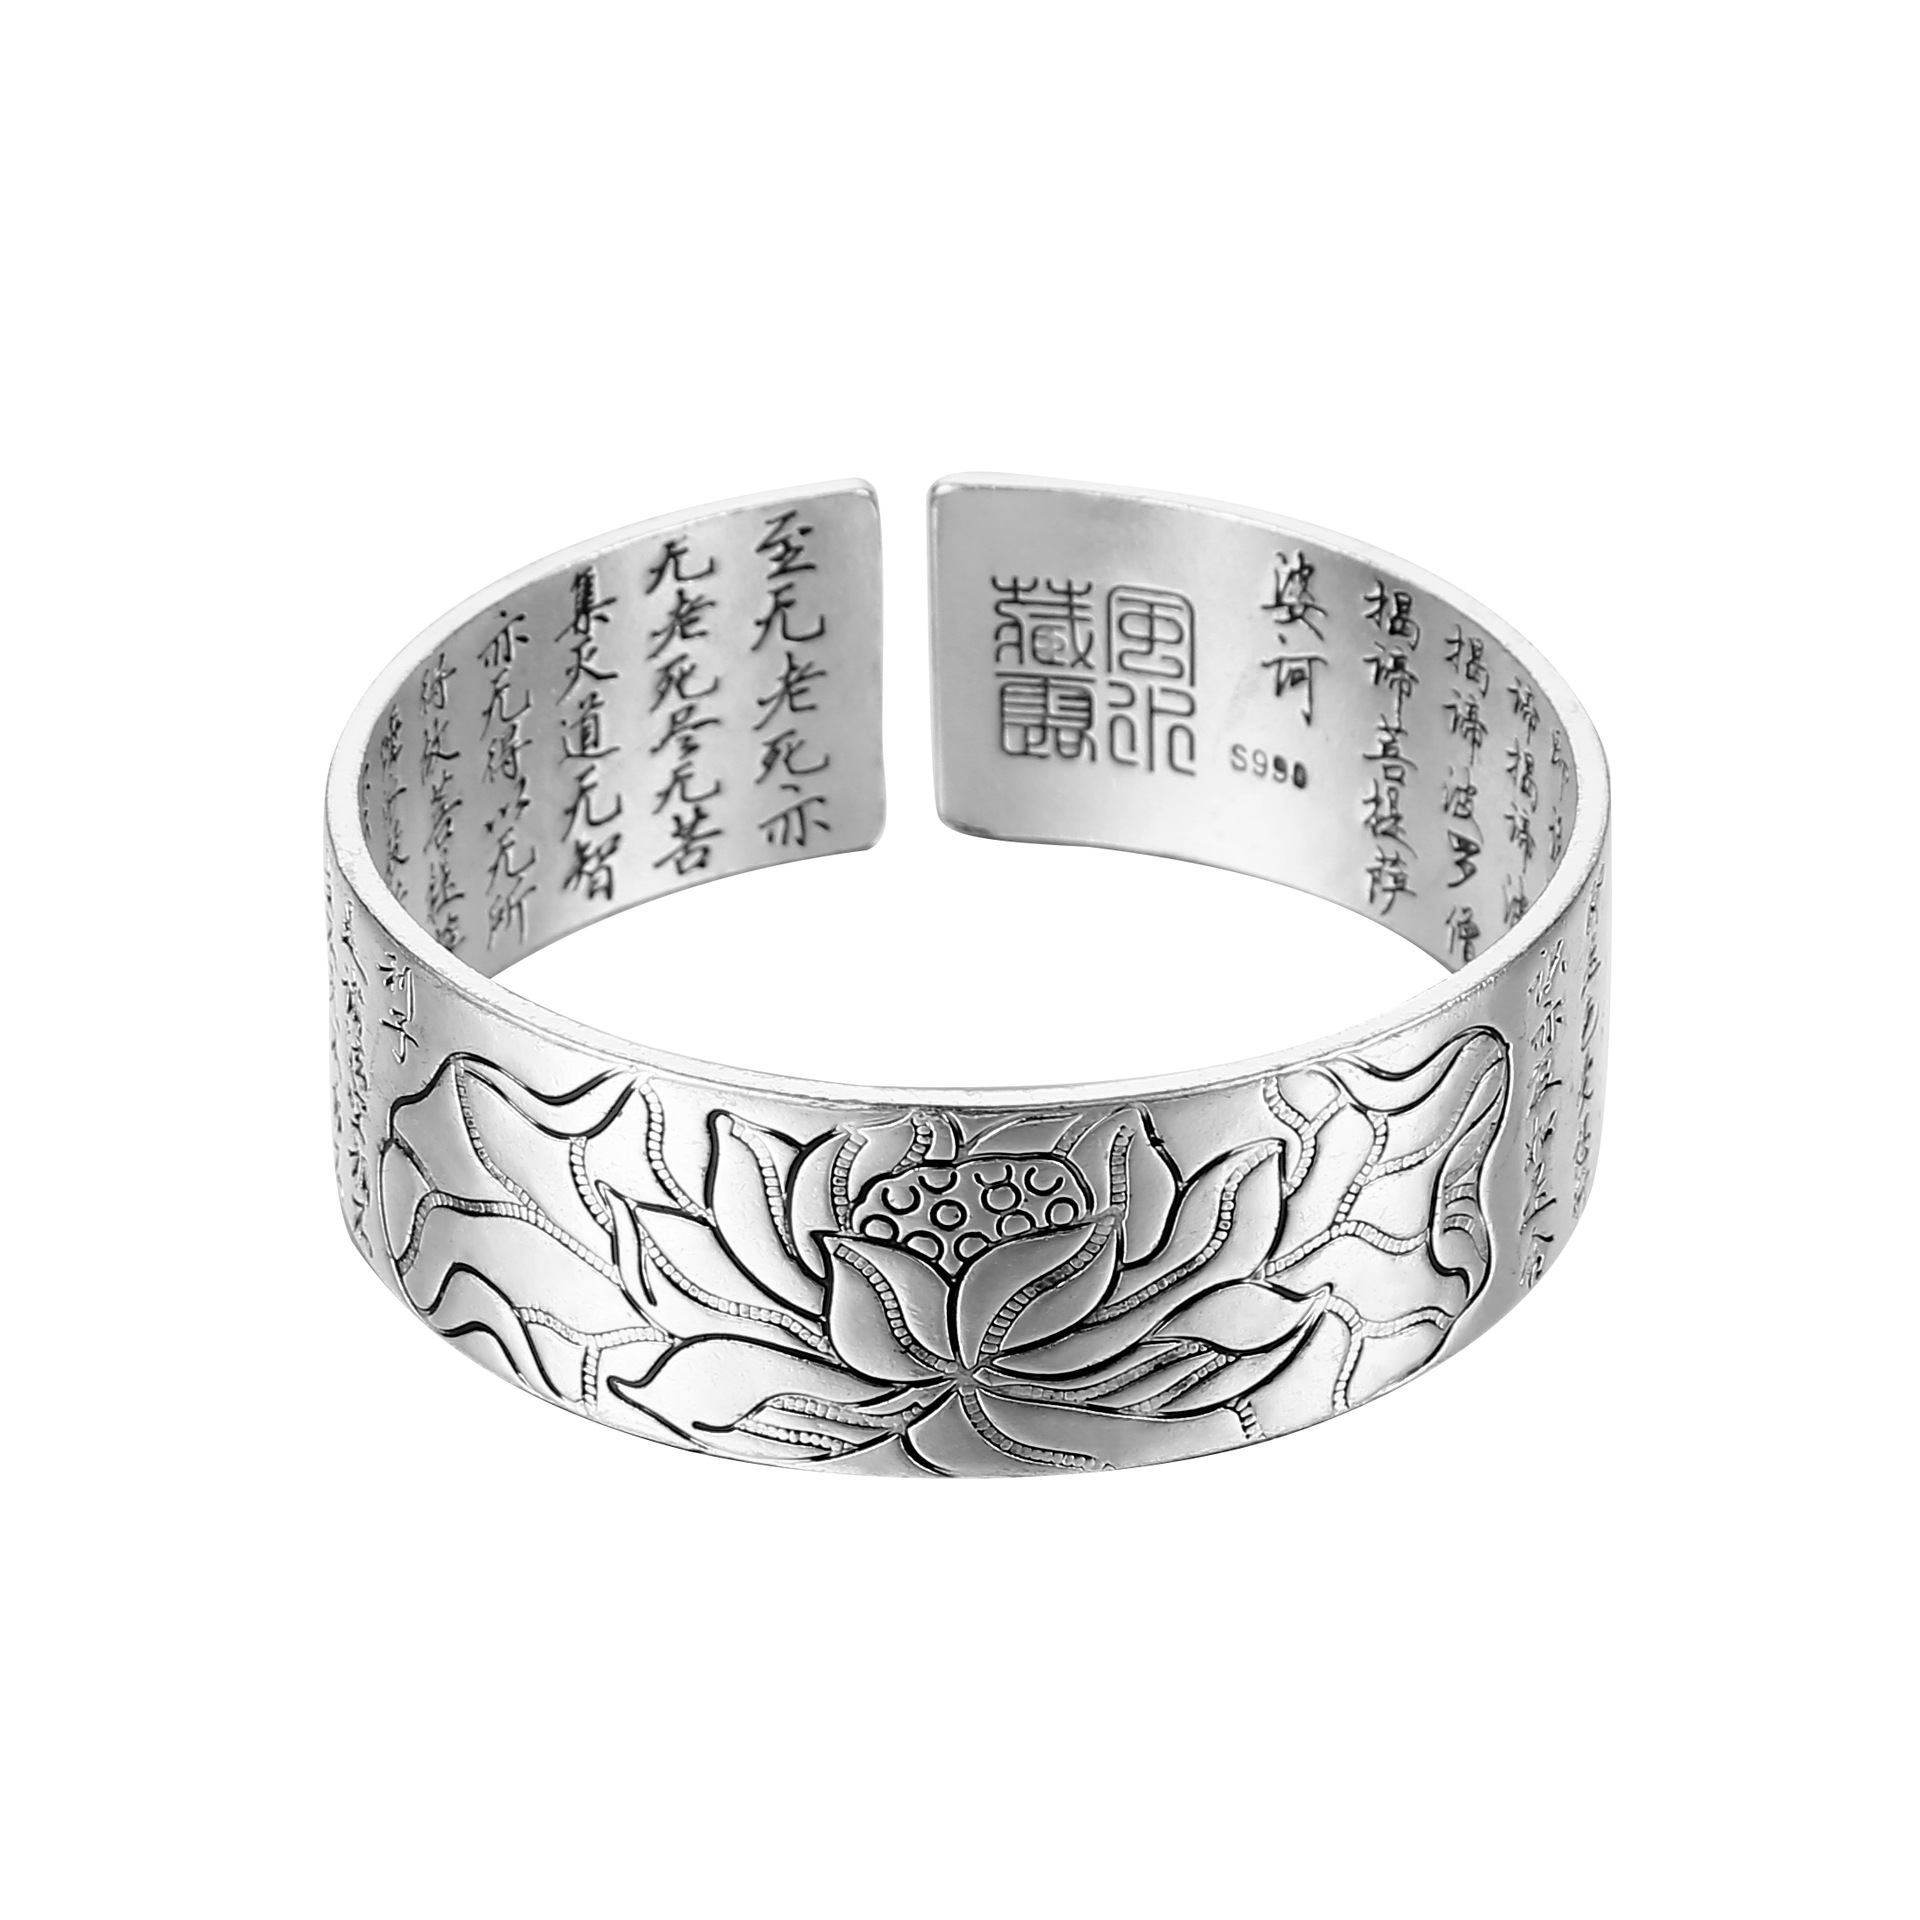 Lotus Sutra 925 Sterling Silver Cuff Bracelets Bangles Tibetan Buddhist Scriptures Language Female Hand Jewelry